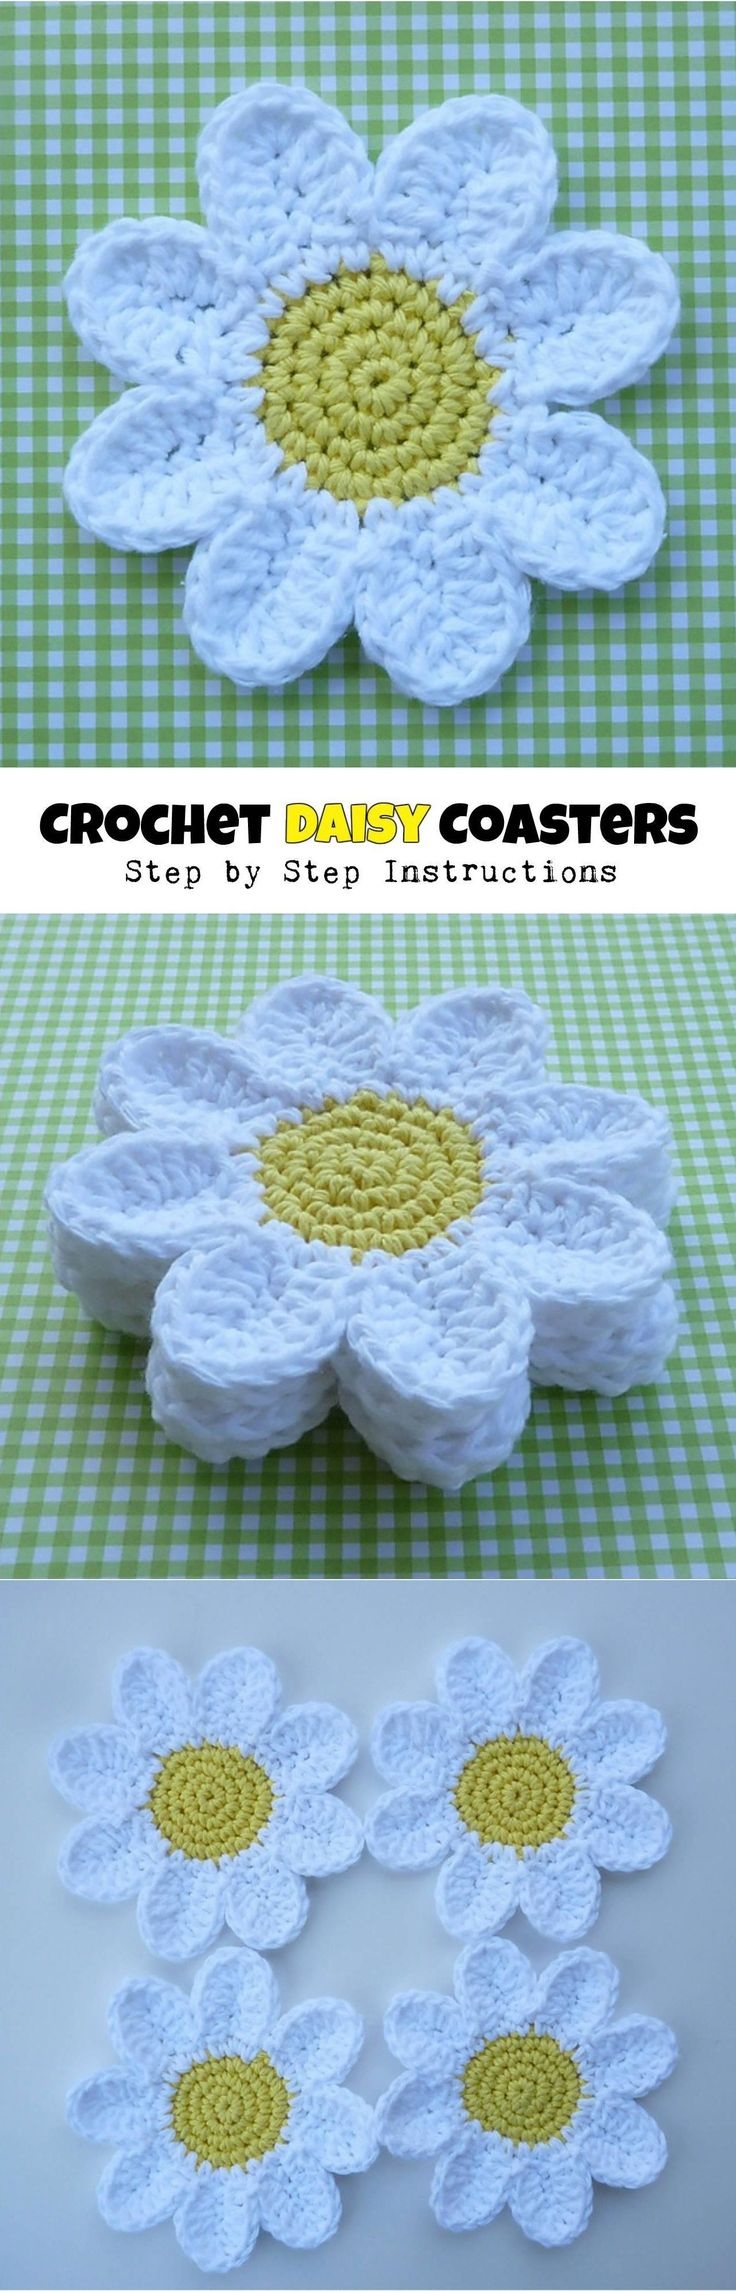 Crochet Daisy Coasters #CrochetPatterns